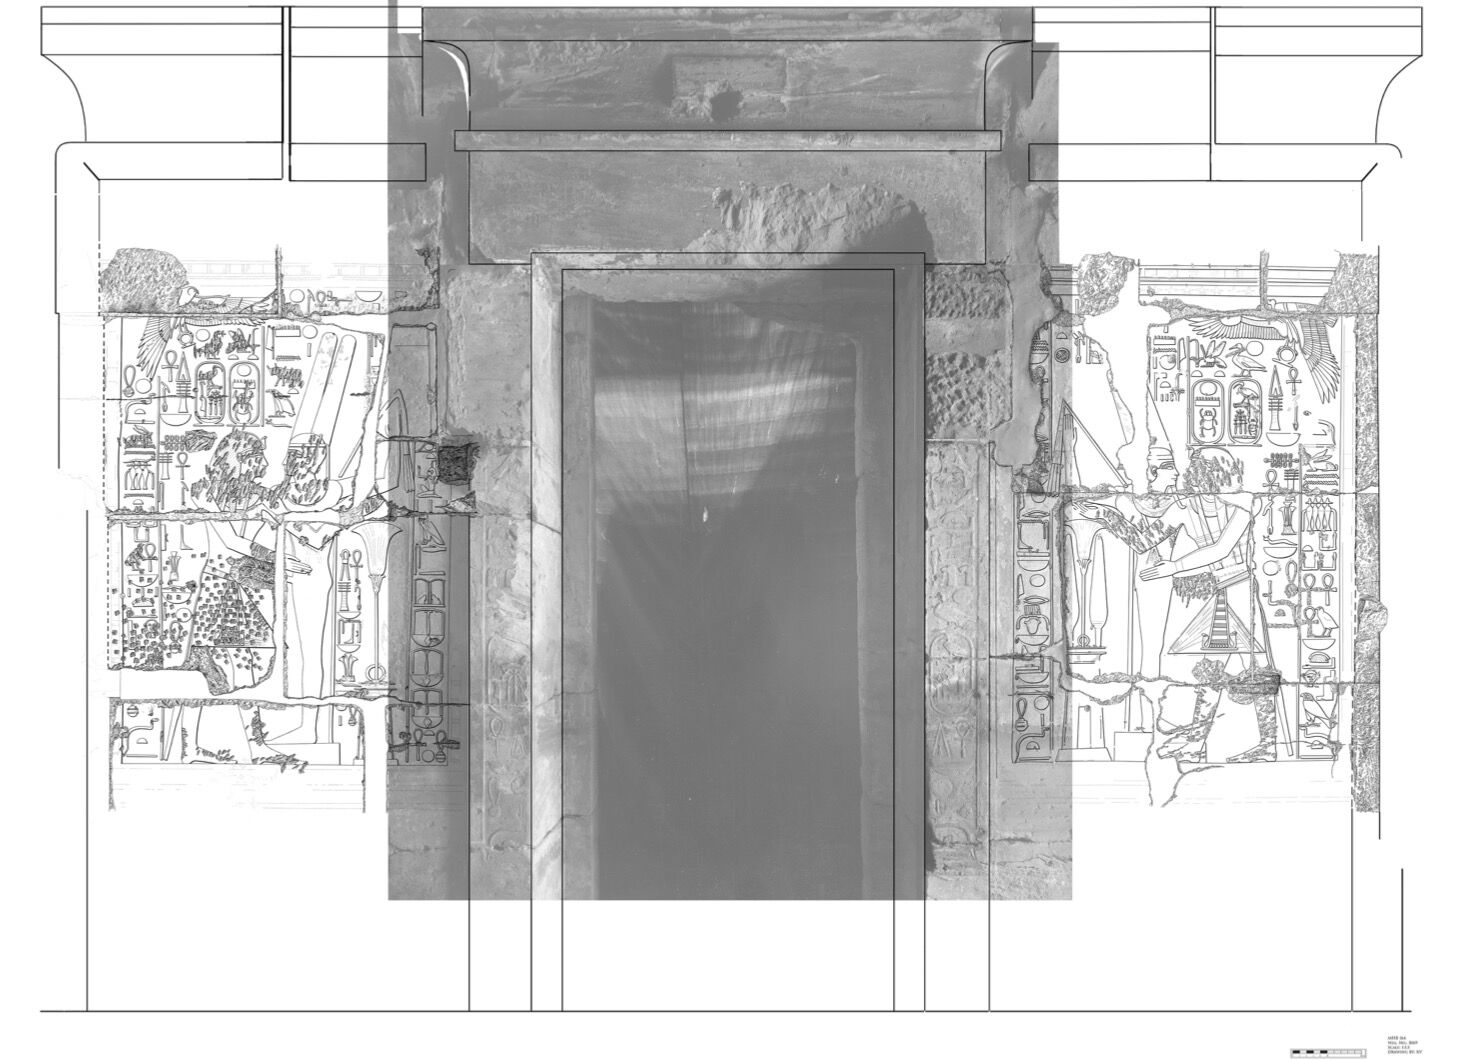 Creating the Master Background